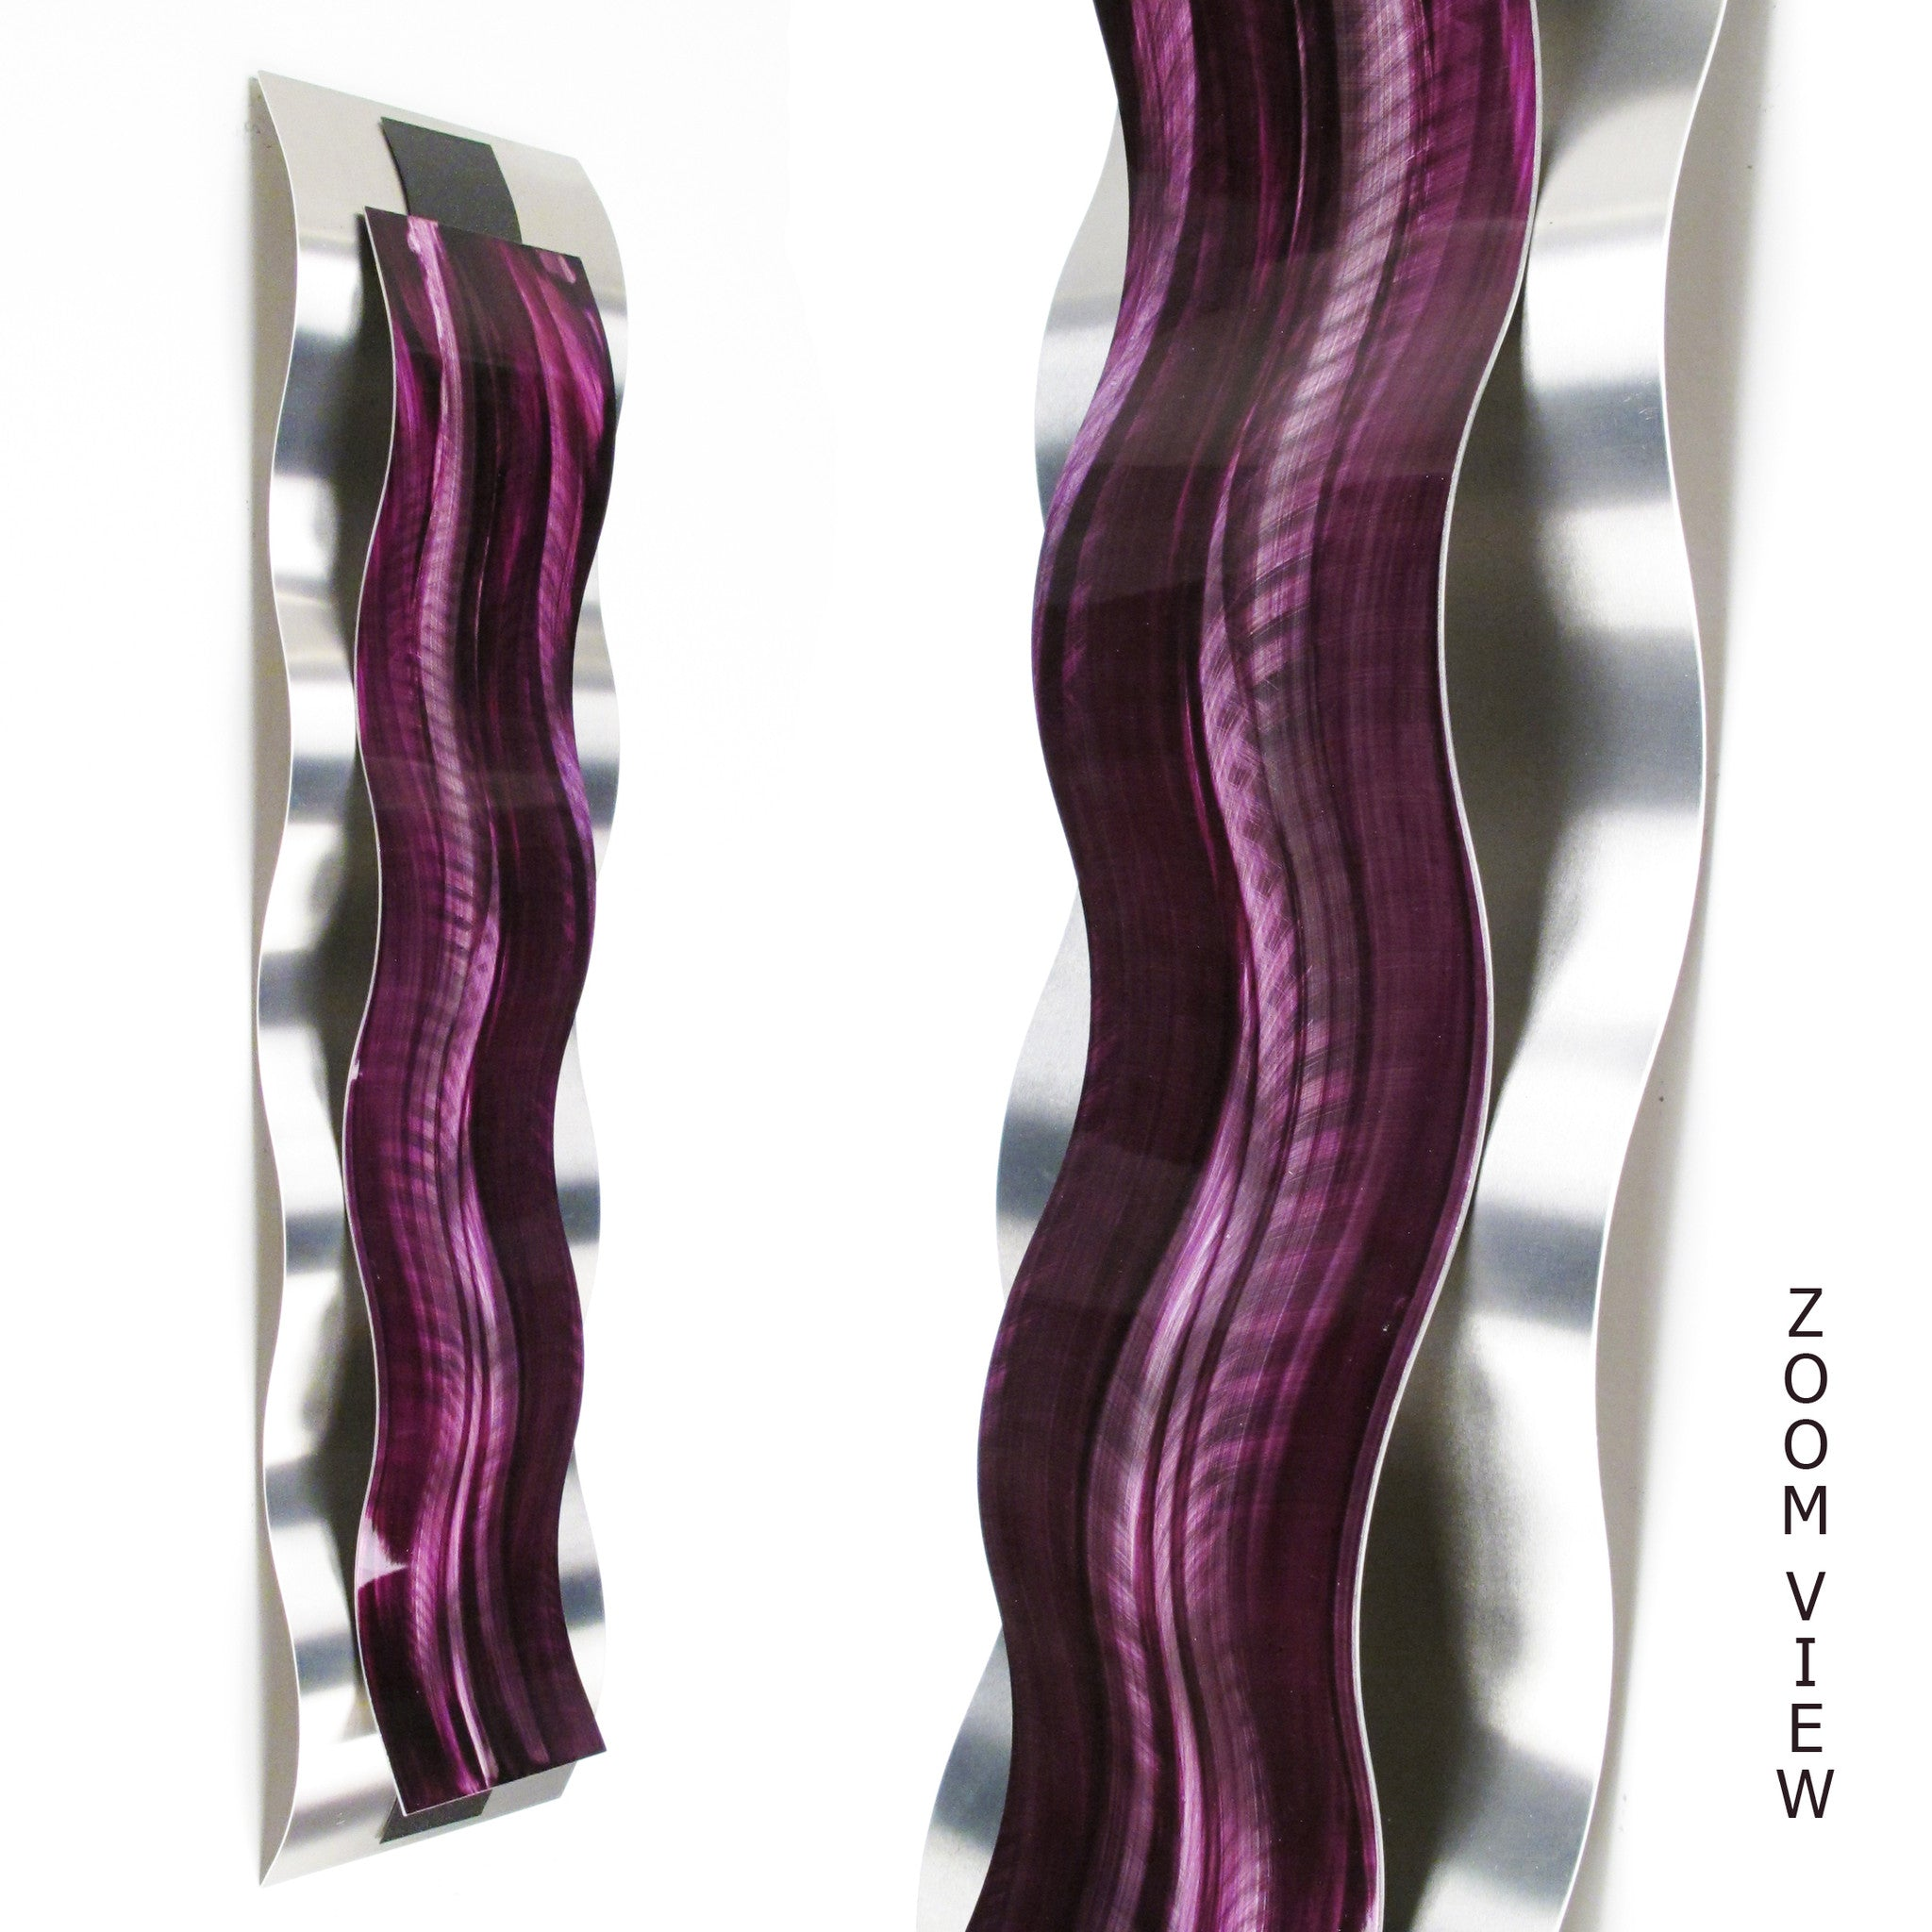 purple wall art rhythmic curves wall decor sculpture dv8 studio. Black Bedroom Furniture Sets. Home Design Ideas